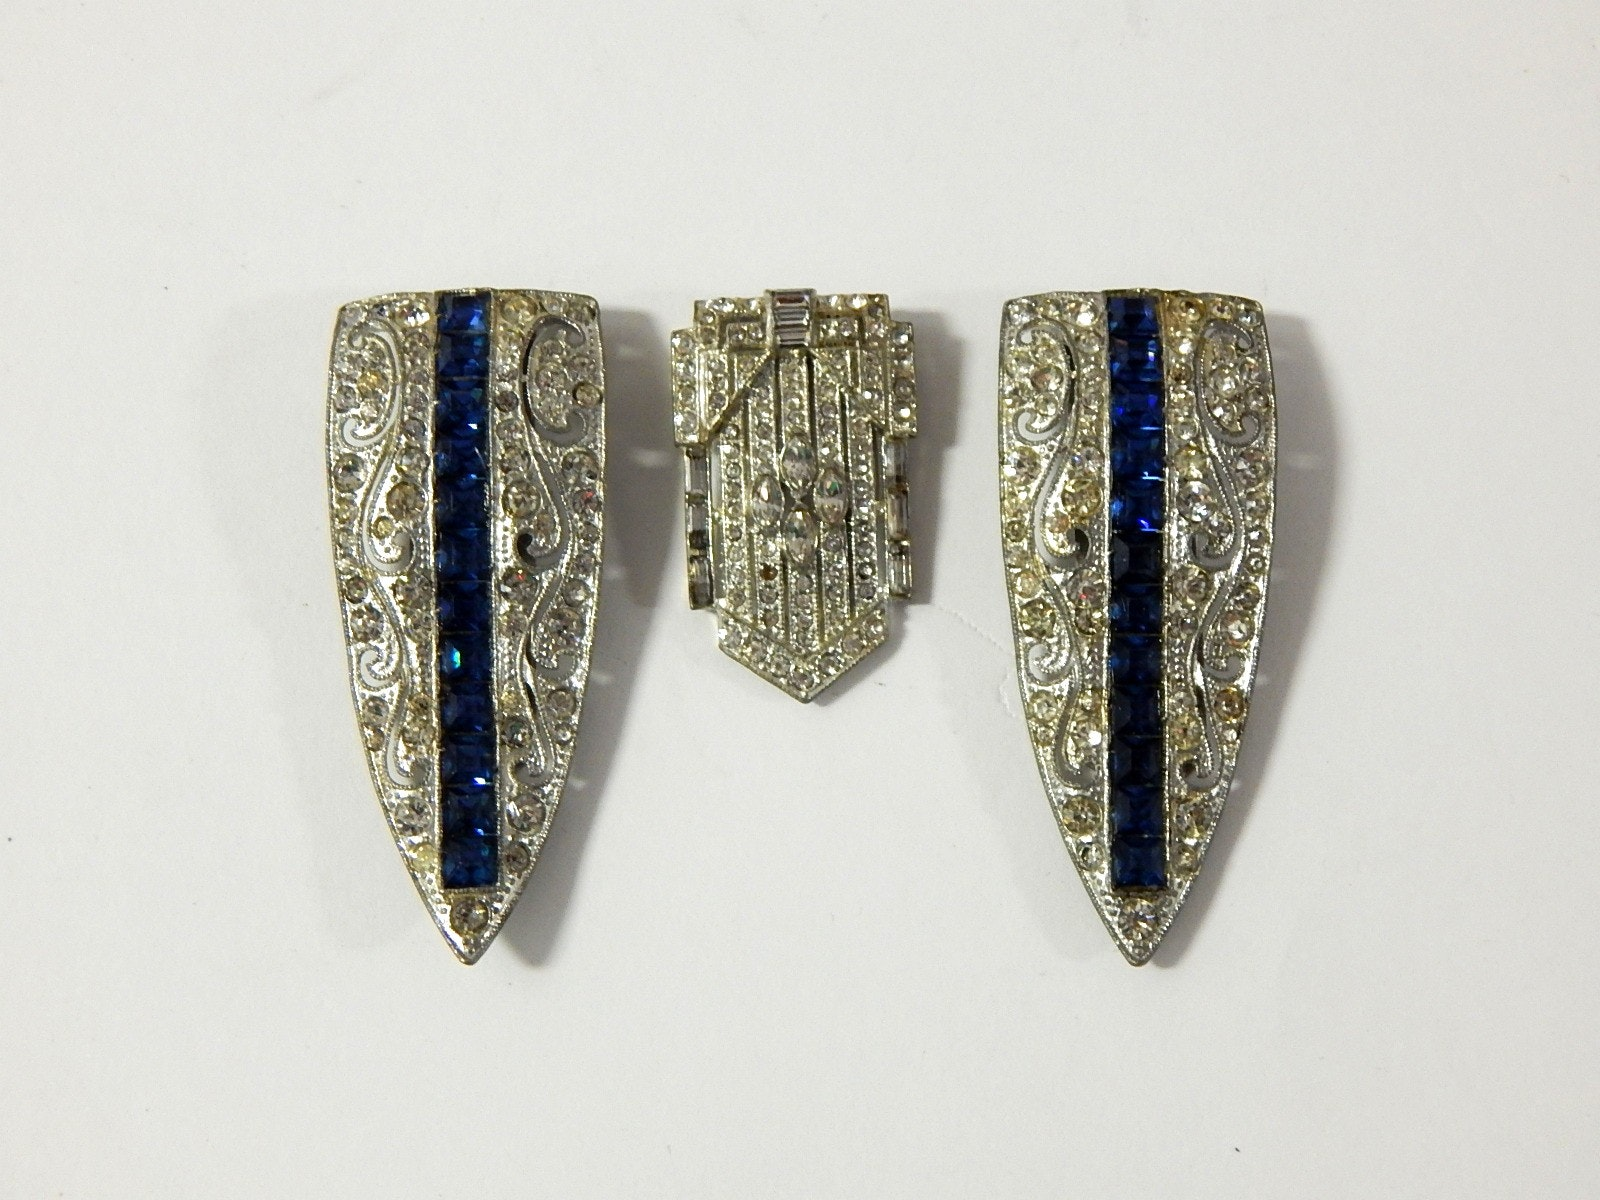 Patented 1852 Rhinestone Shoe Clips and Art Deco Clip